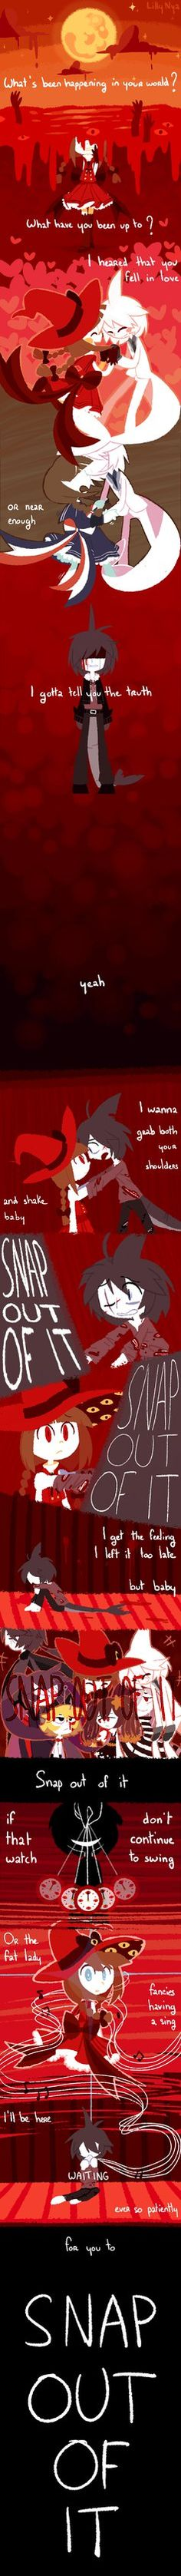 Snap out it it / Wadanohara Normal End 1(SPOILERS) by GrumpyBuneary.deviantart.com on @DeviantArt